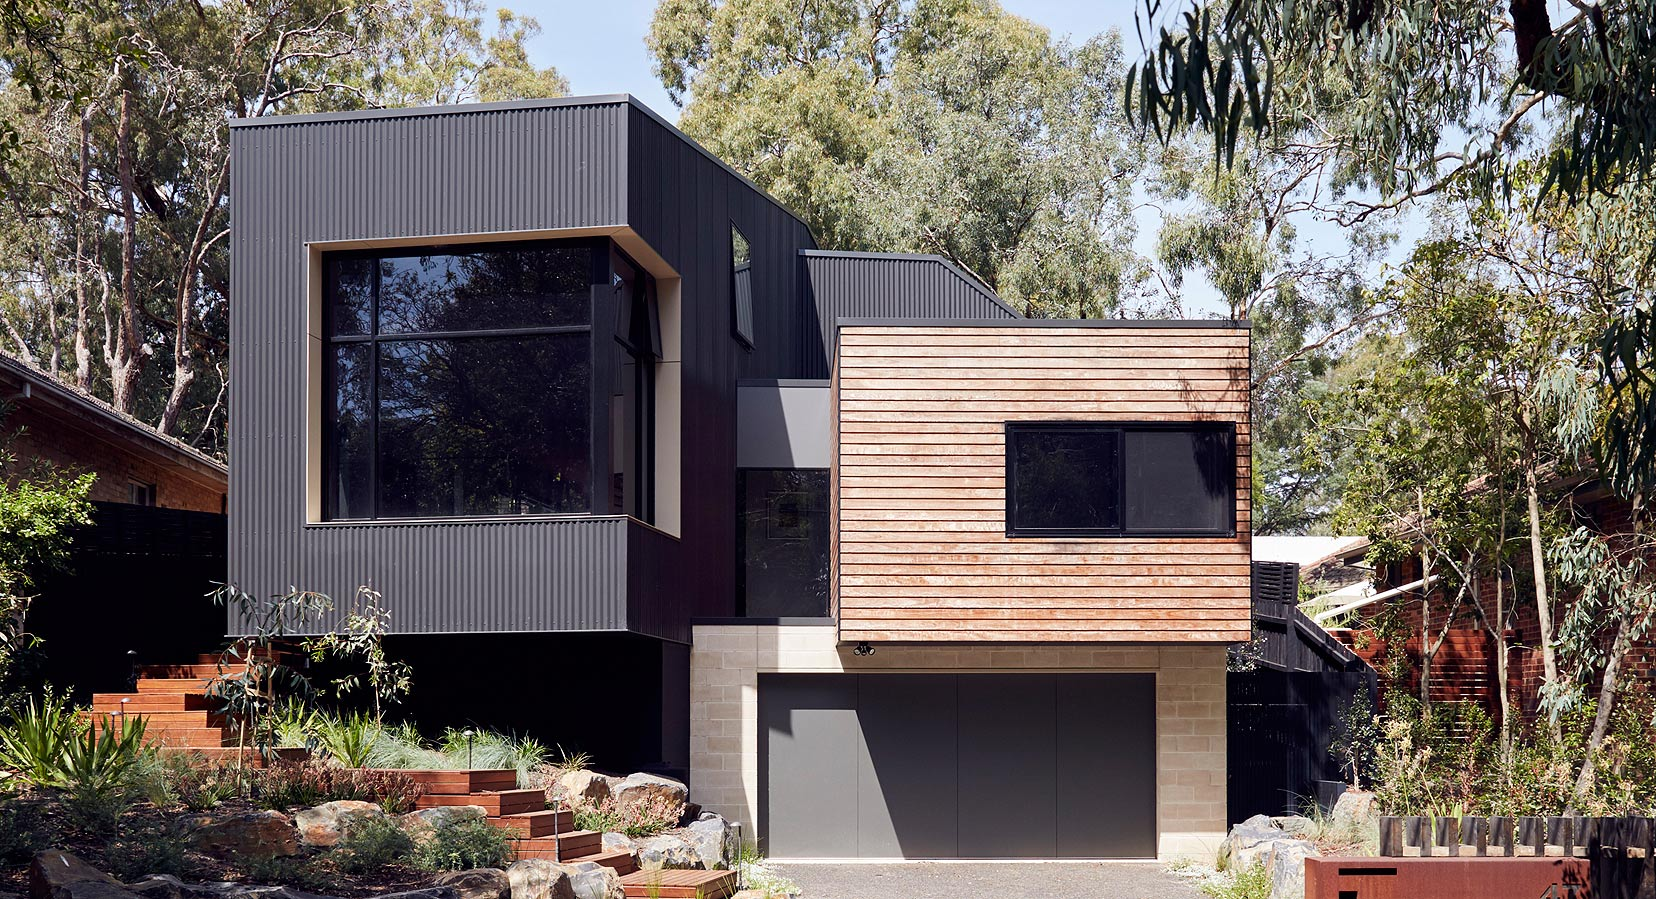 Take a Look Inside the Blackburn House by ArchiBlox